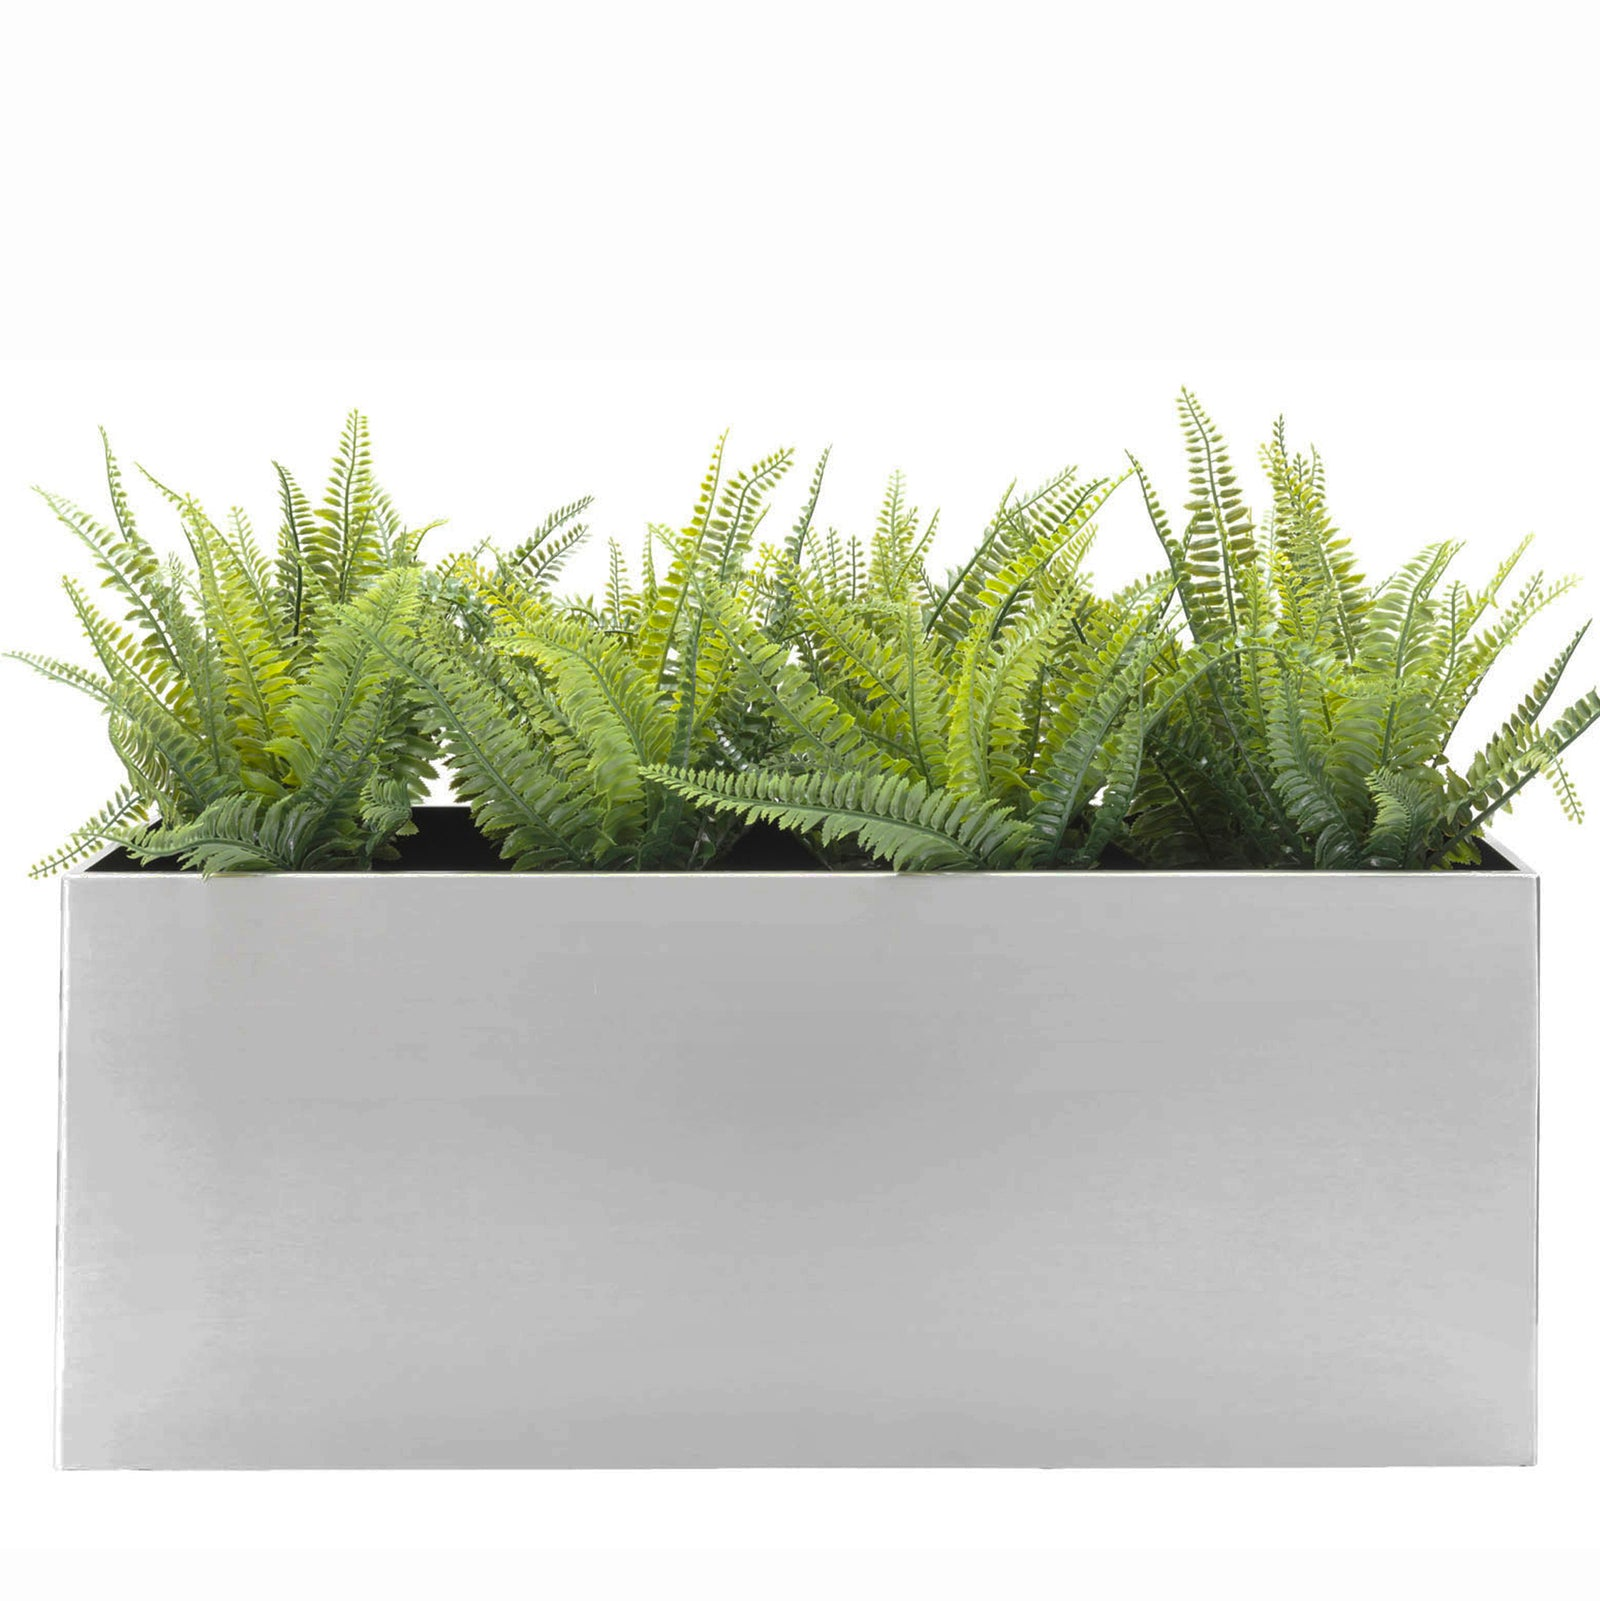 boxes rectangle do garden find it gallery vinyl outdoor planter top nz things box decoration interesting yourself home i